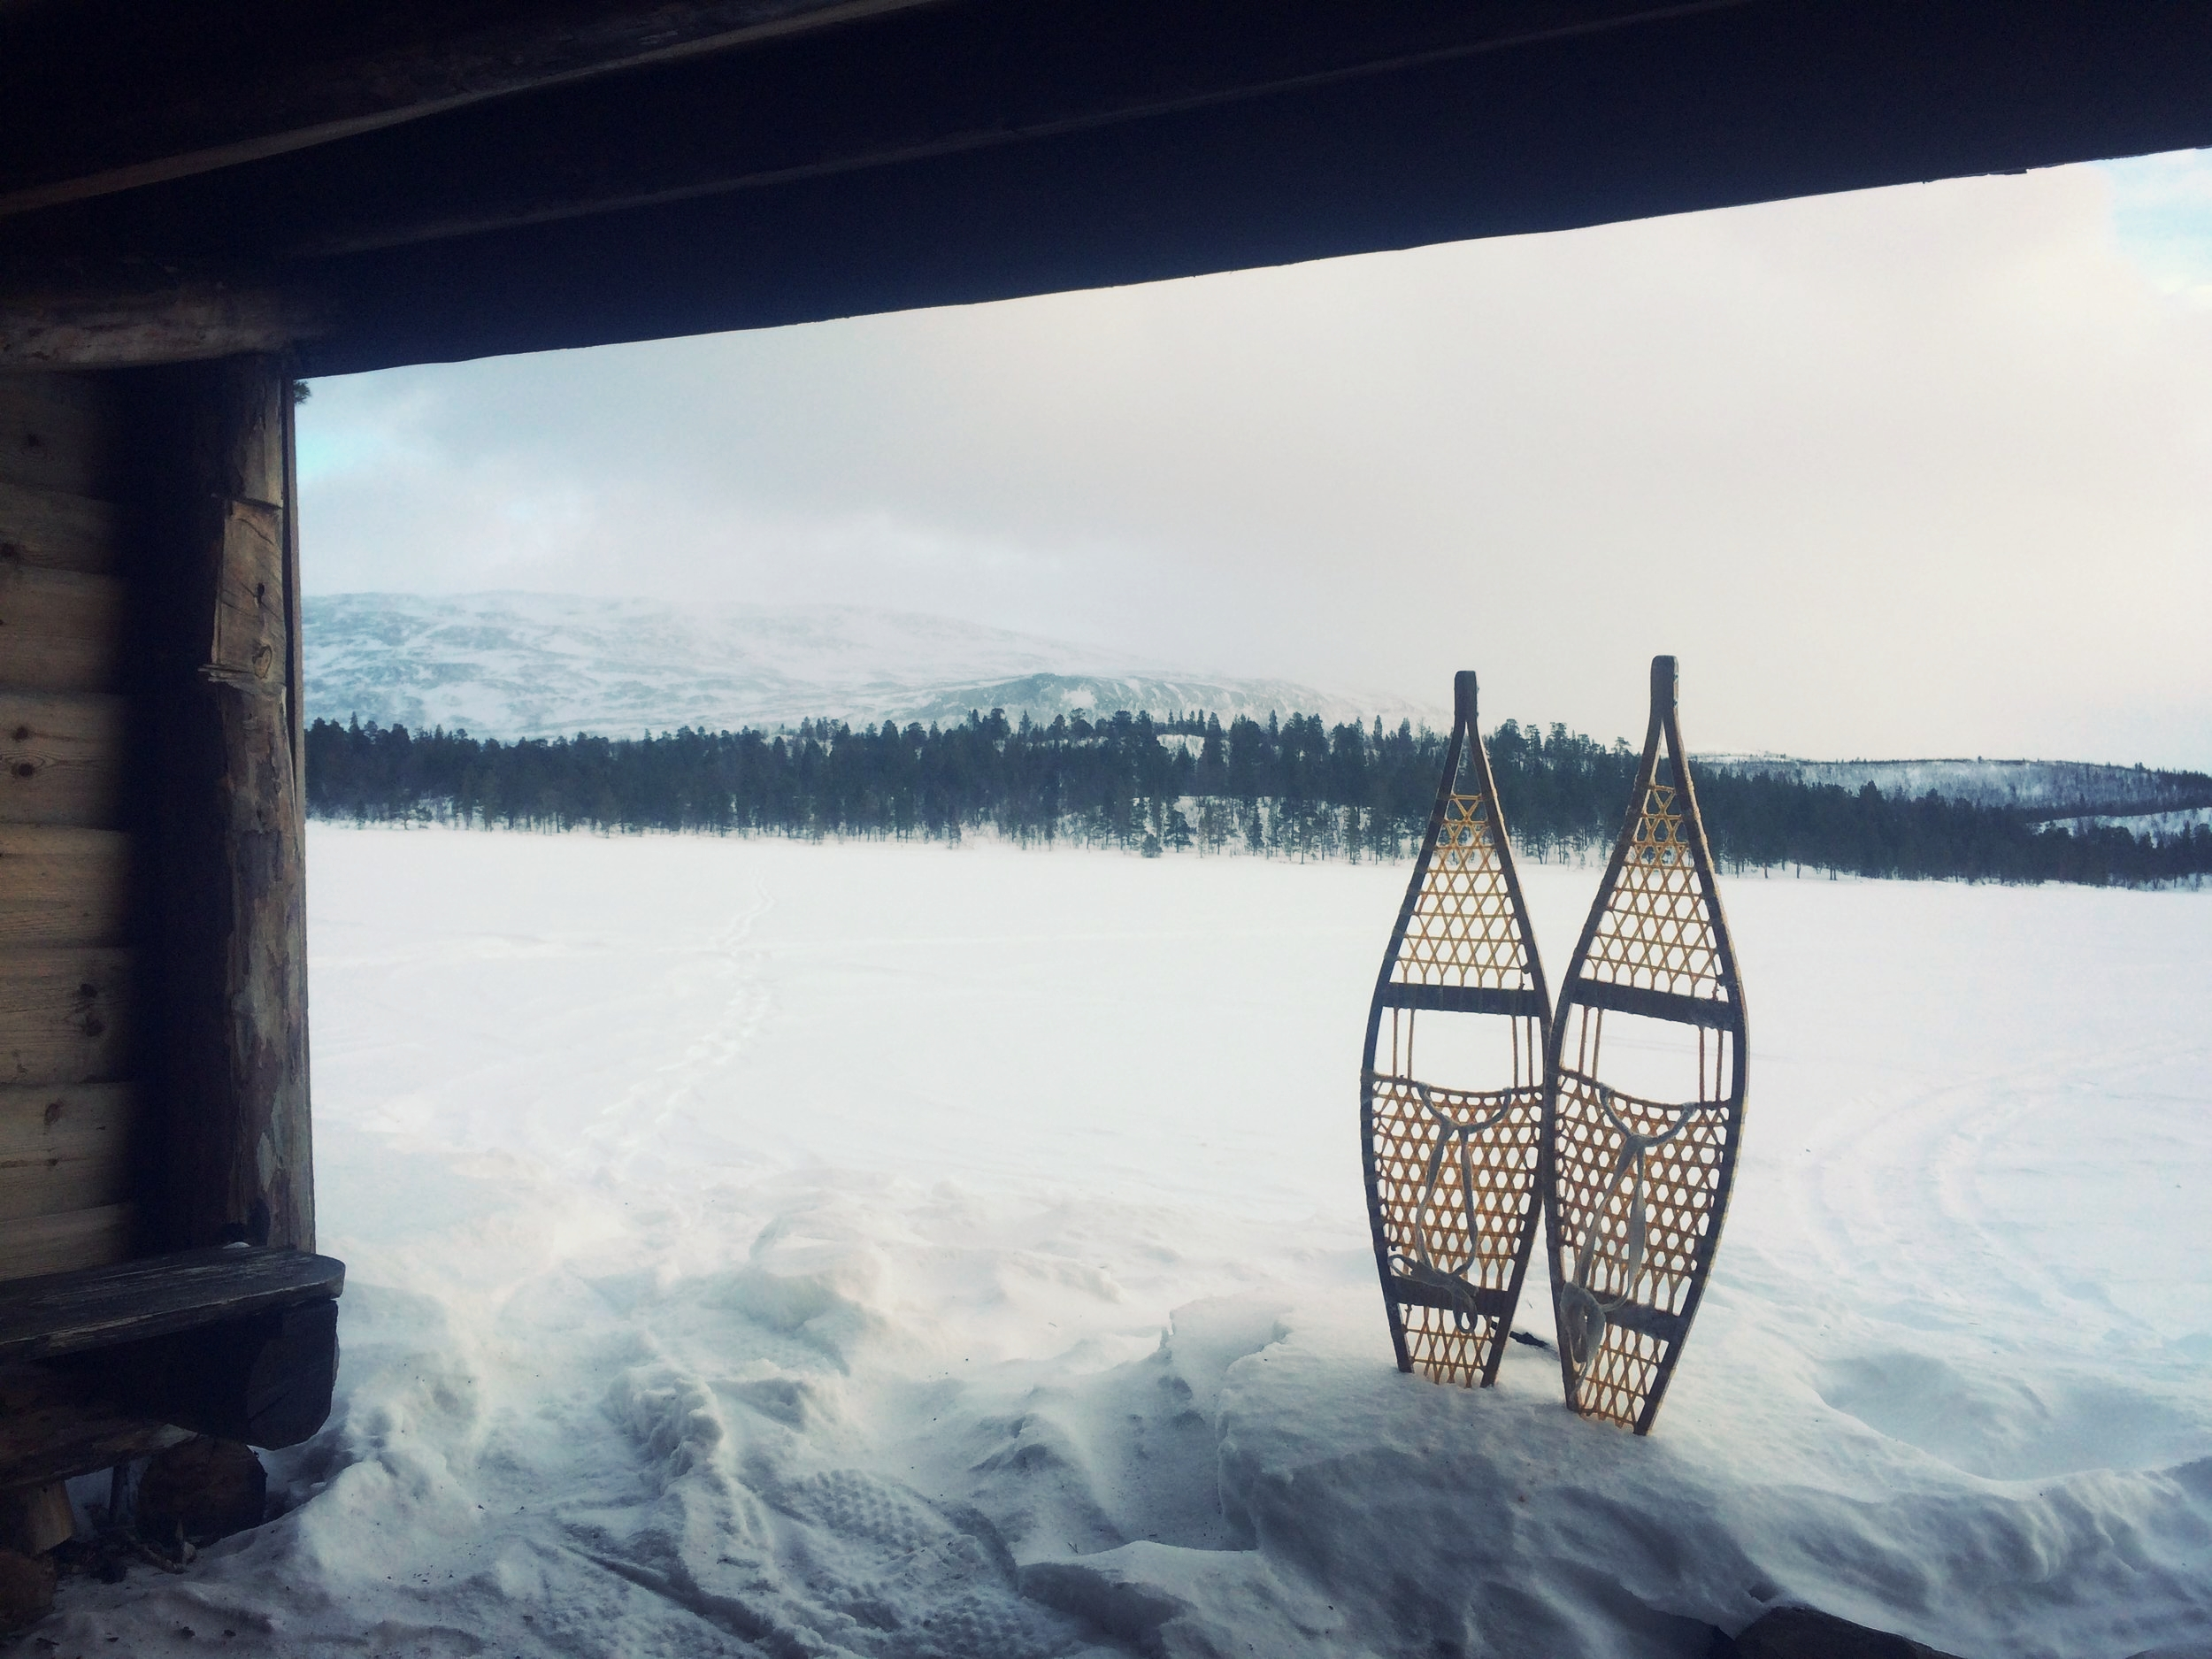 Snowshoeing across frozen lakes in Northern Norway